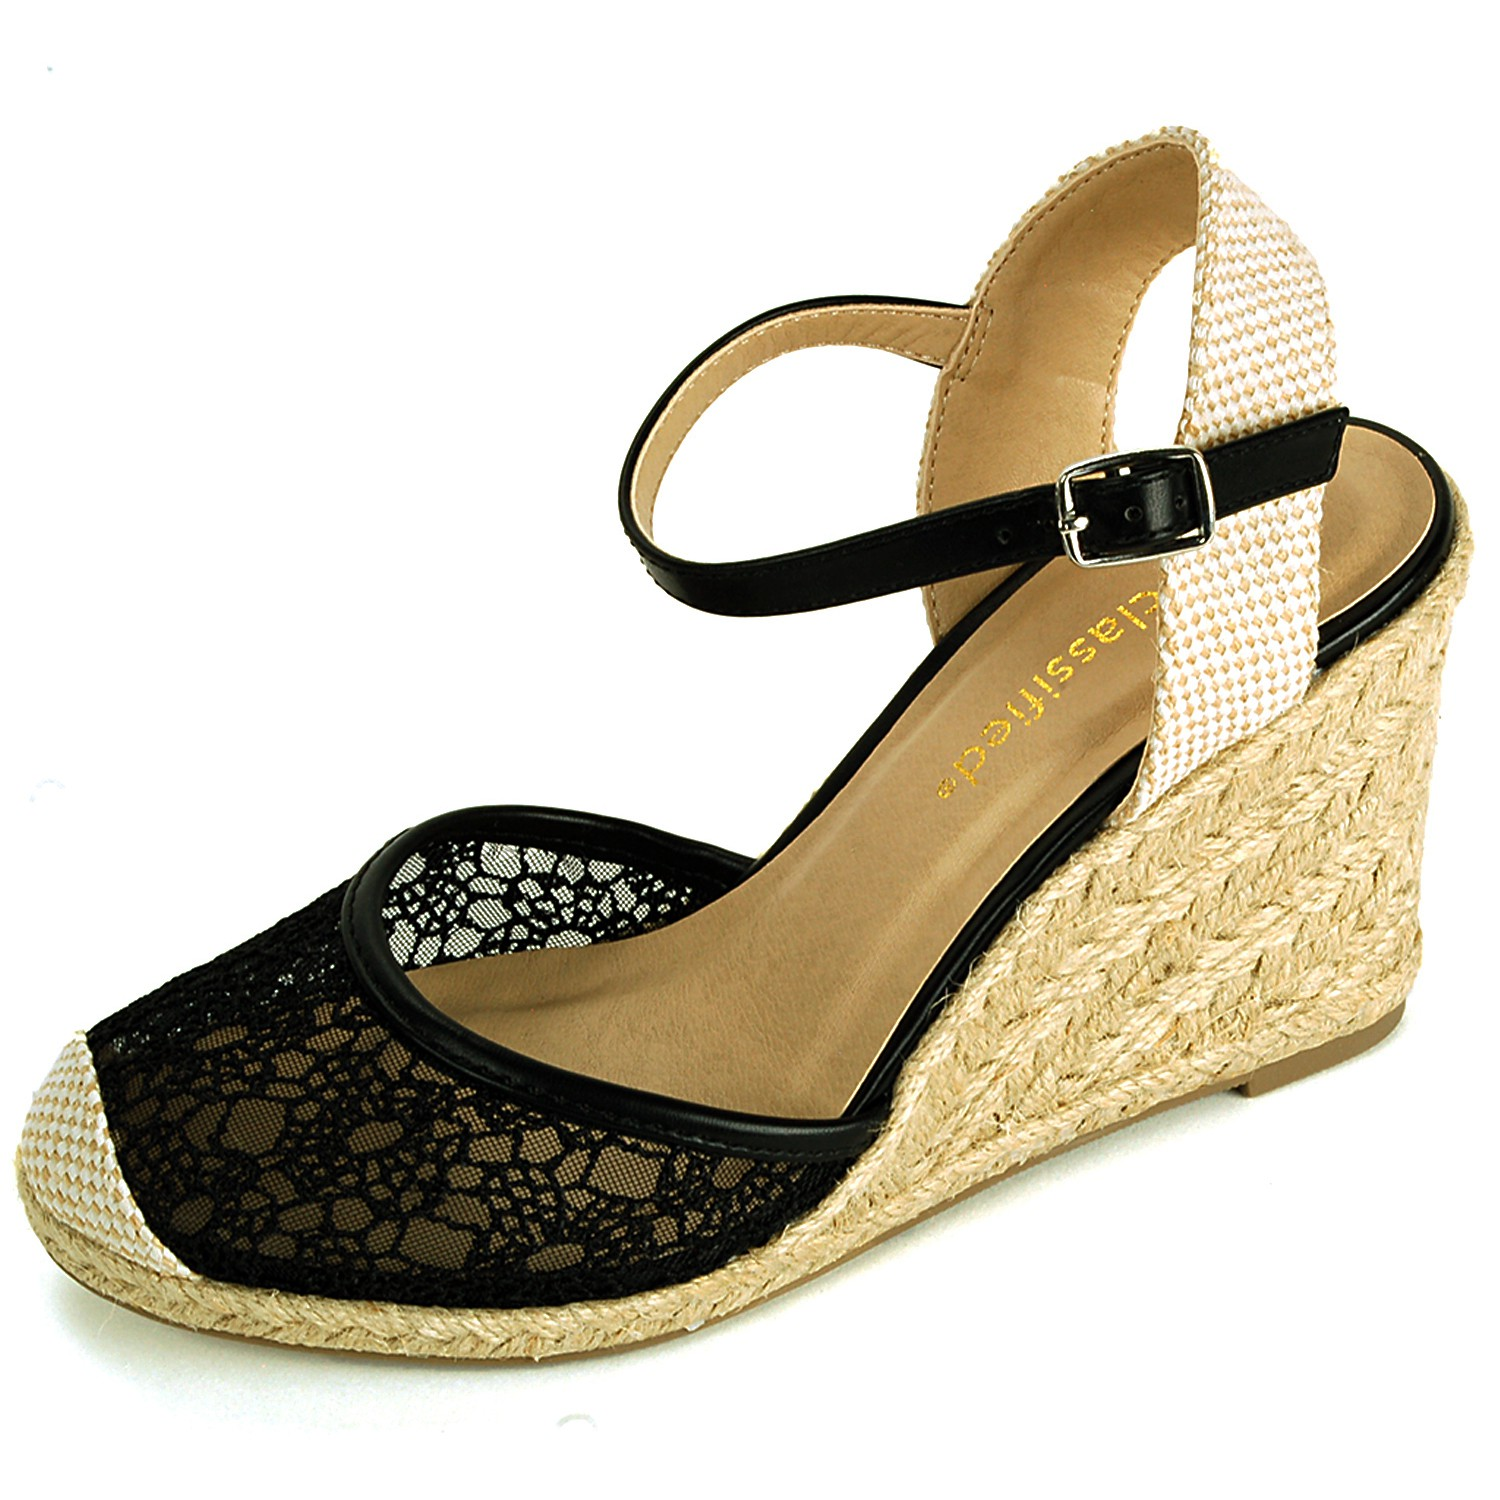 Sandals platform shoes